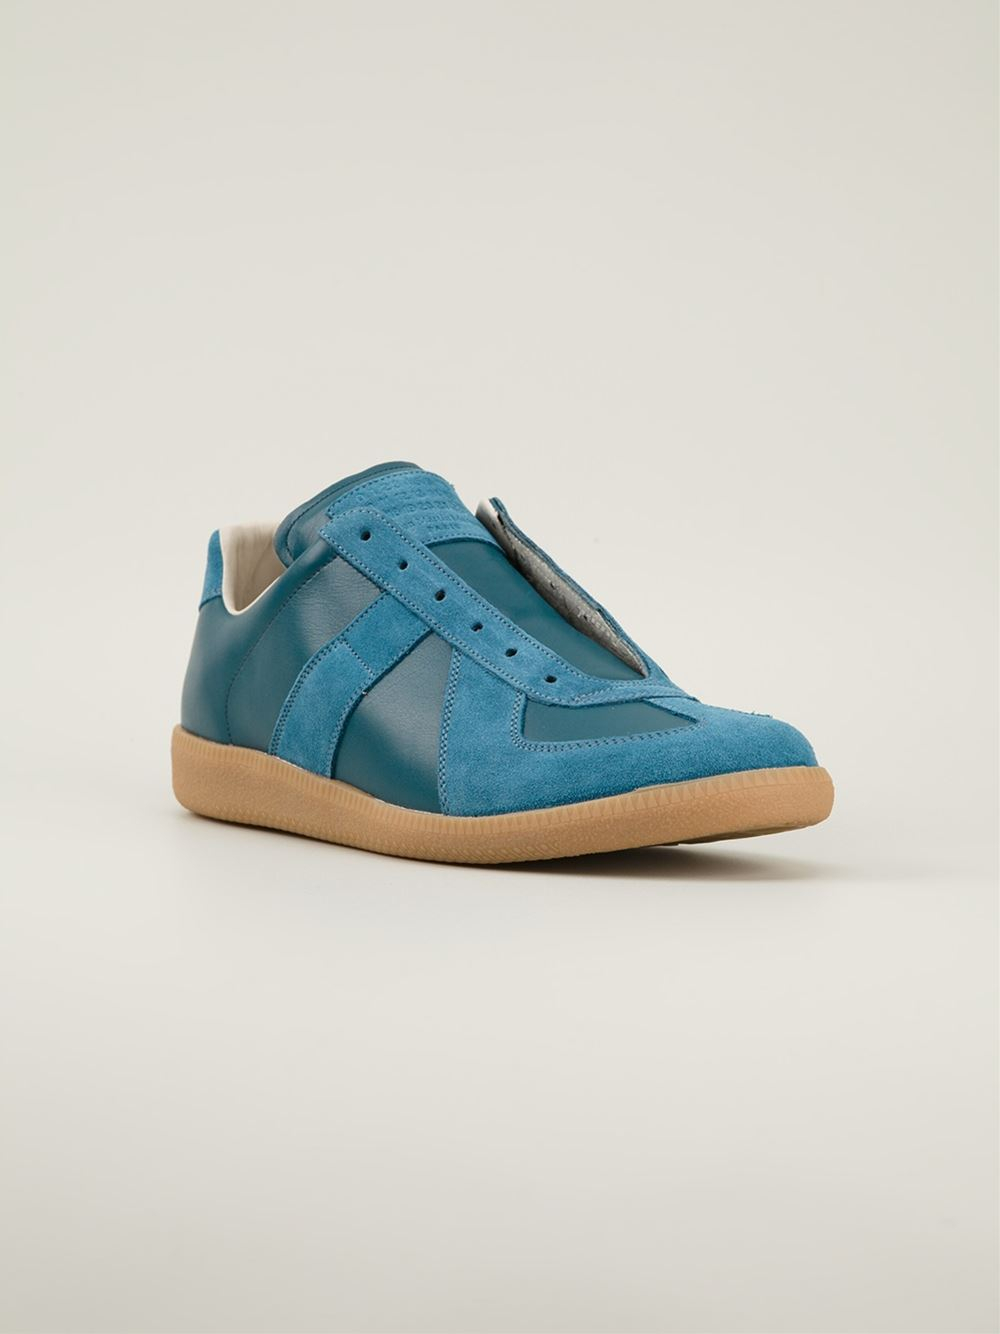 Maison martin margiela low top sneakers in blue for men lyst for Maison